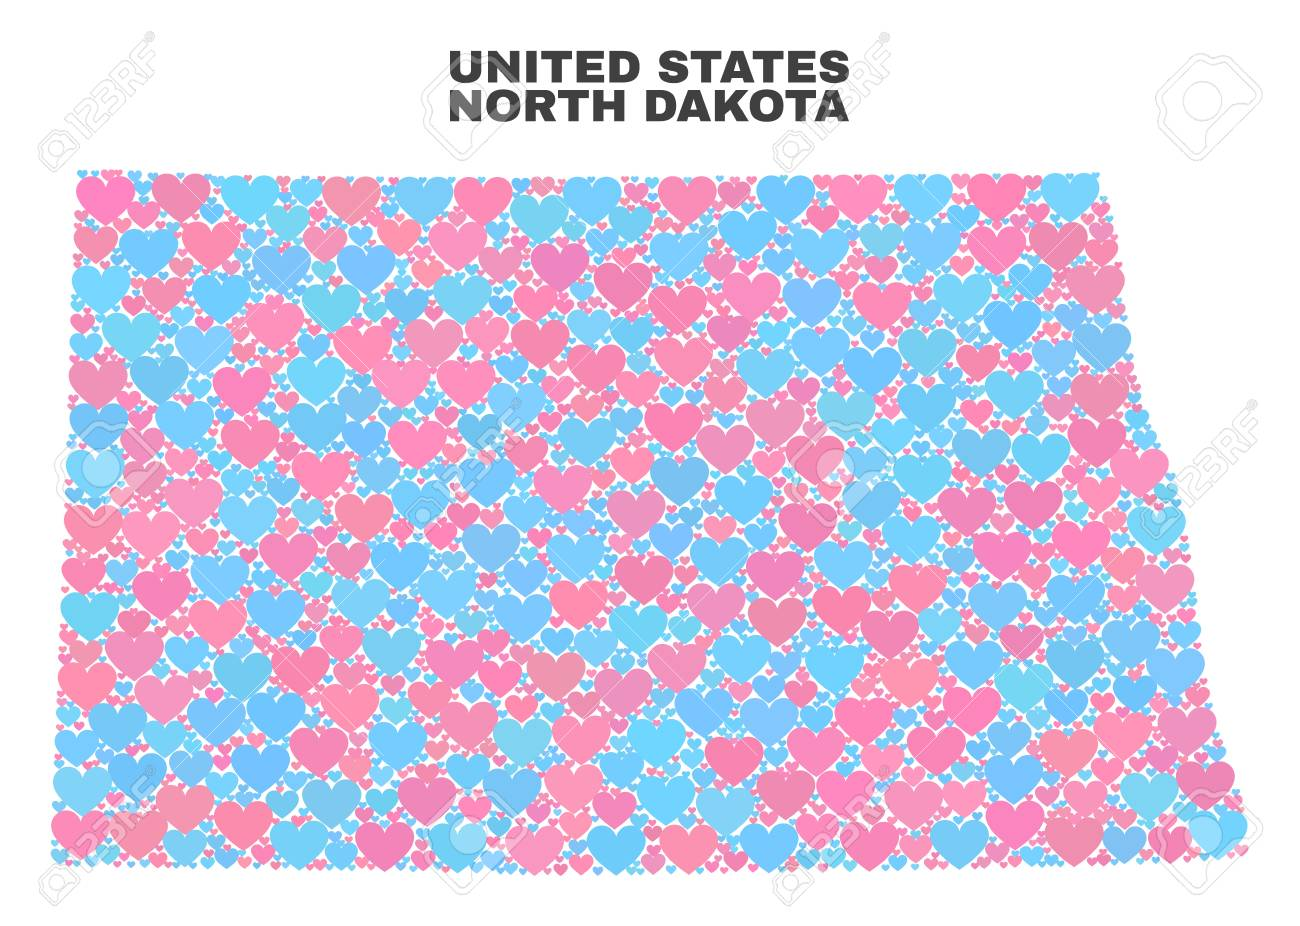 Mosaic North Dakota State Map Of Love Hearts In Pink And Blue ...